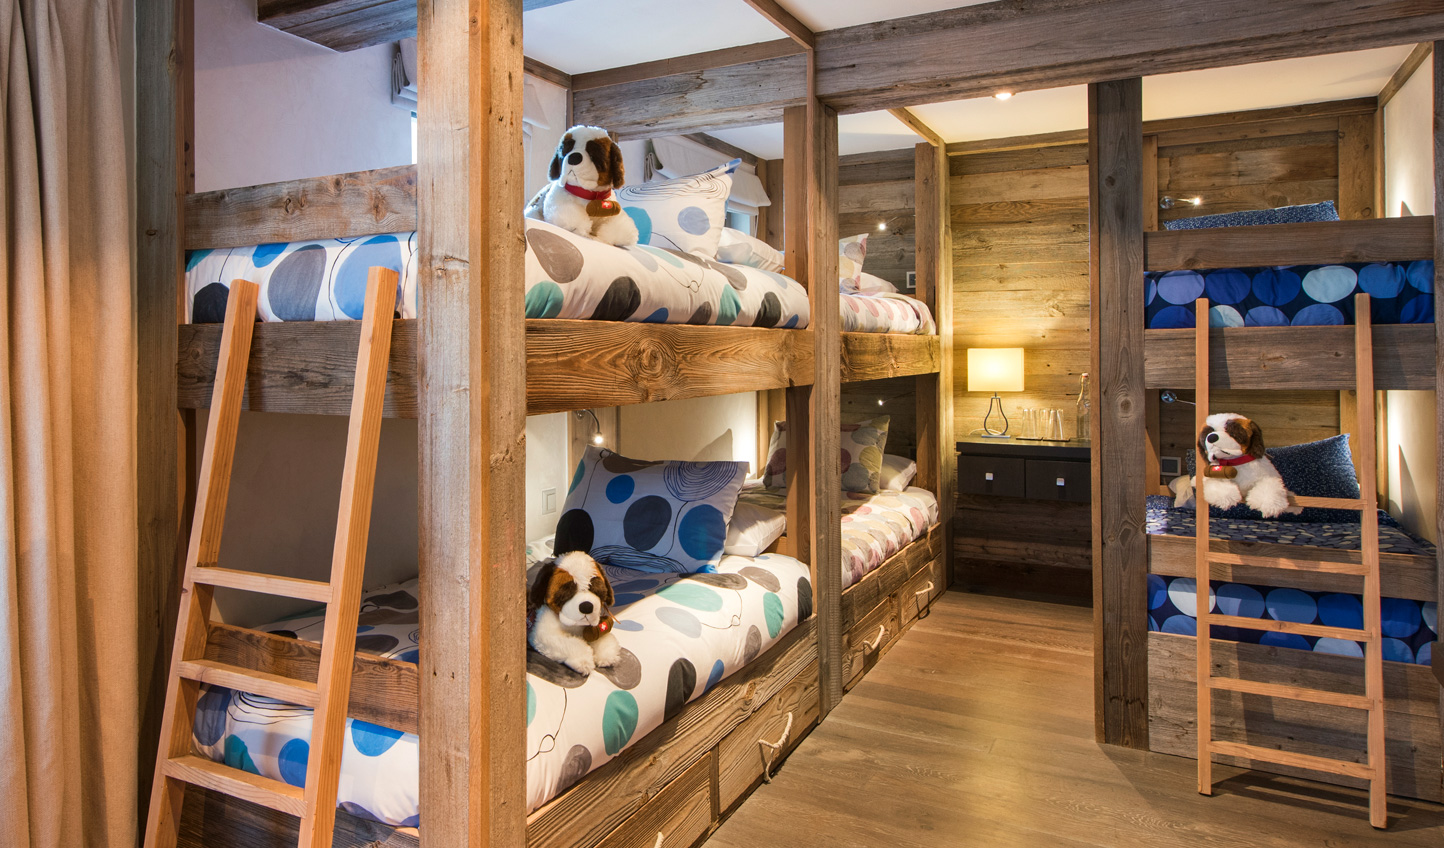 Children will love the Bunk Room with its beanbags and games consoles